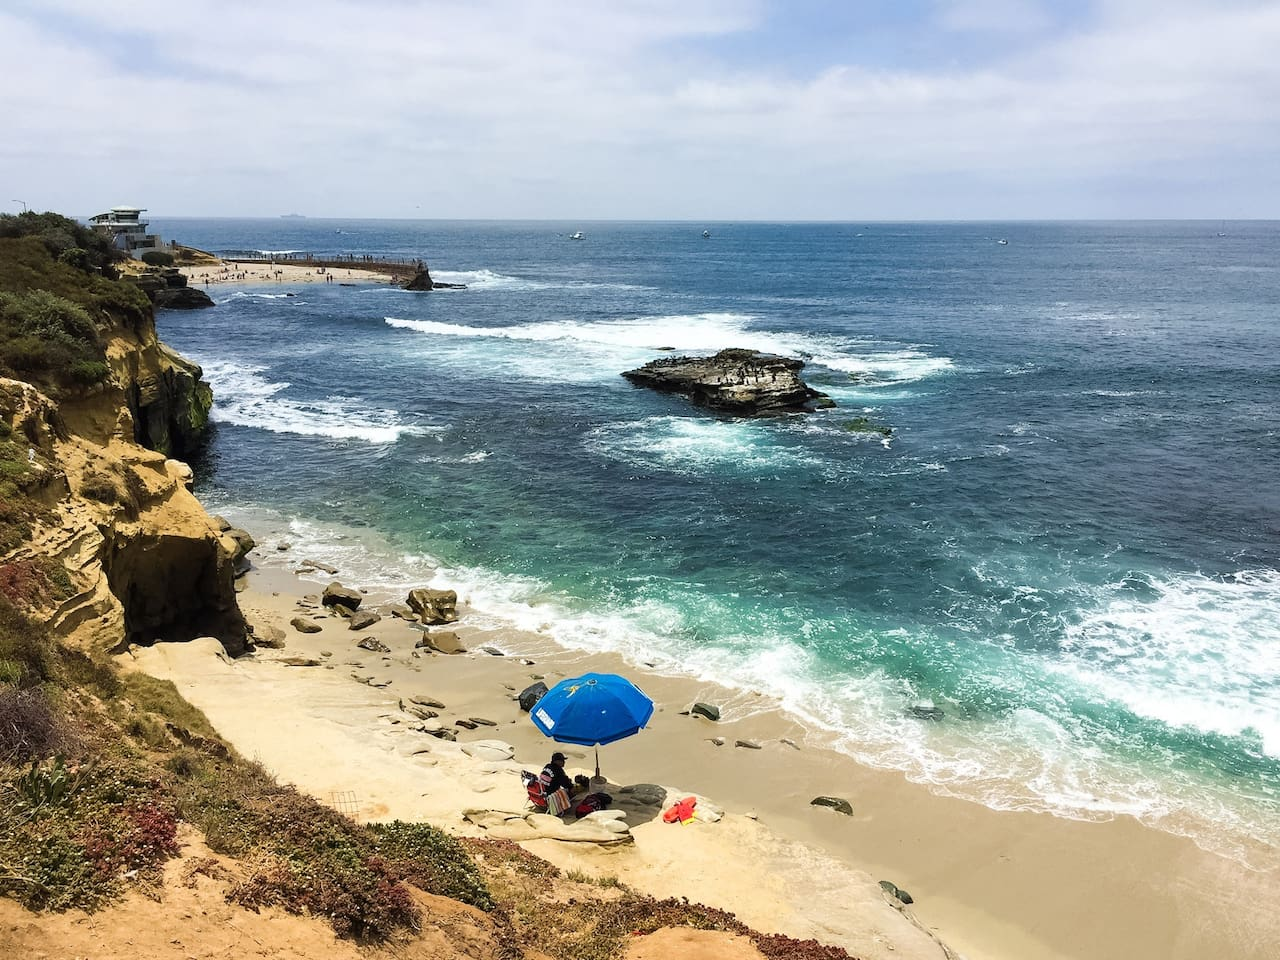 Children's Pool Beach/Seal Rock (5 minute drive from apartment)